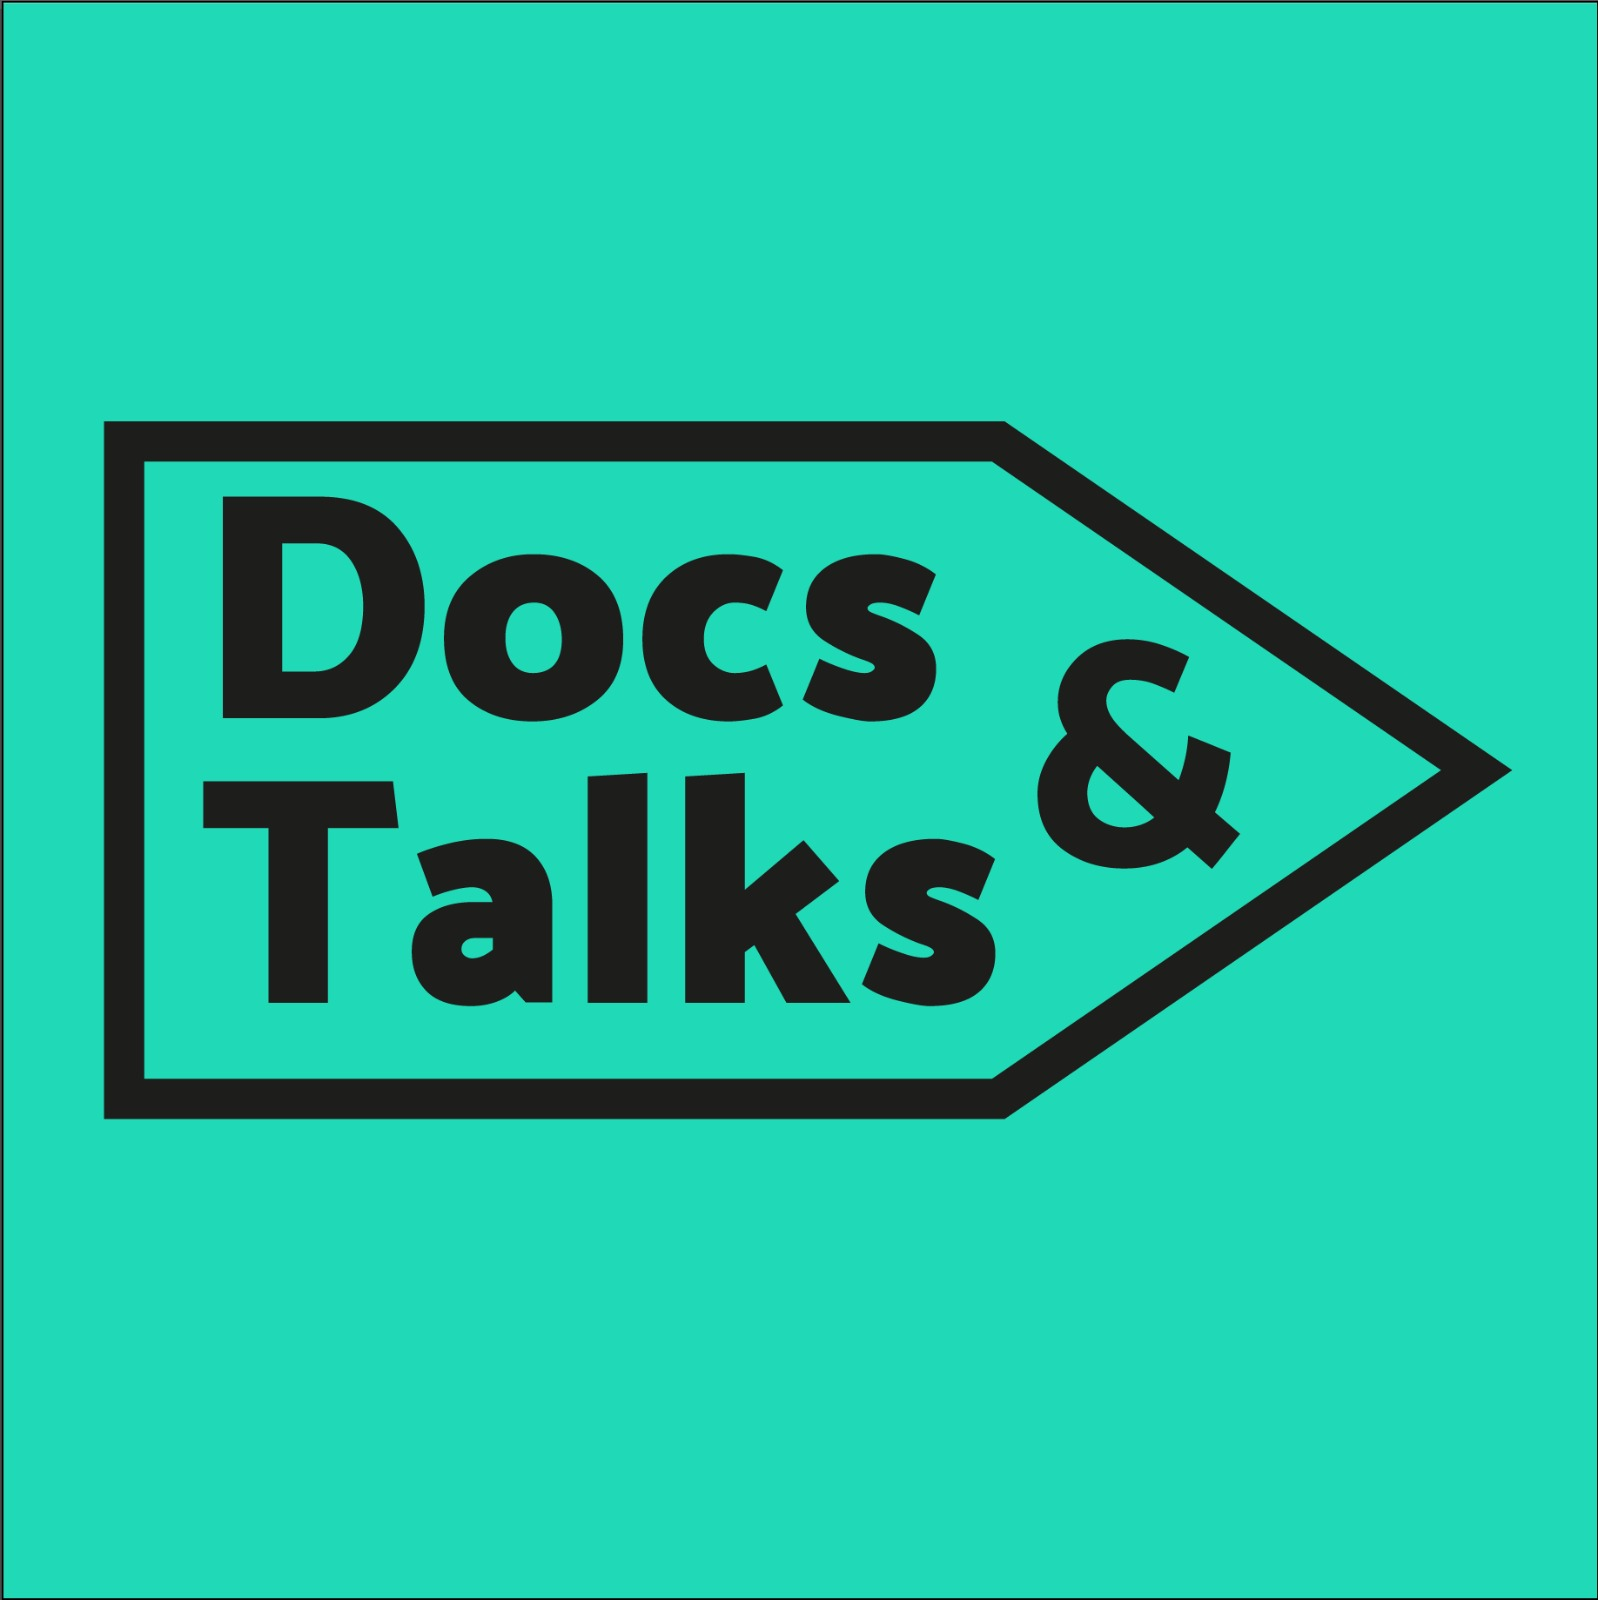 Docs & Talks